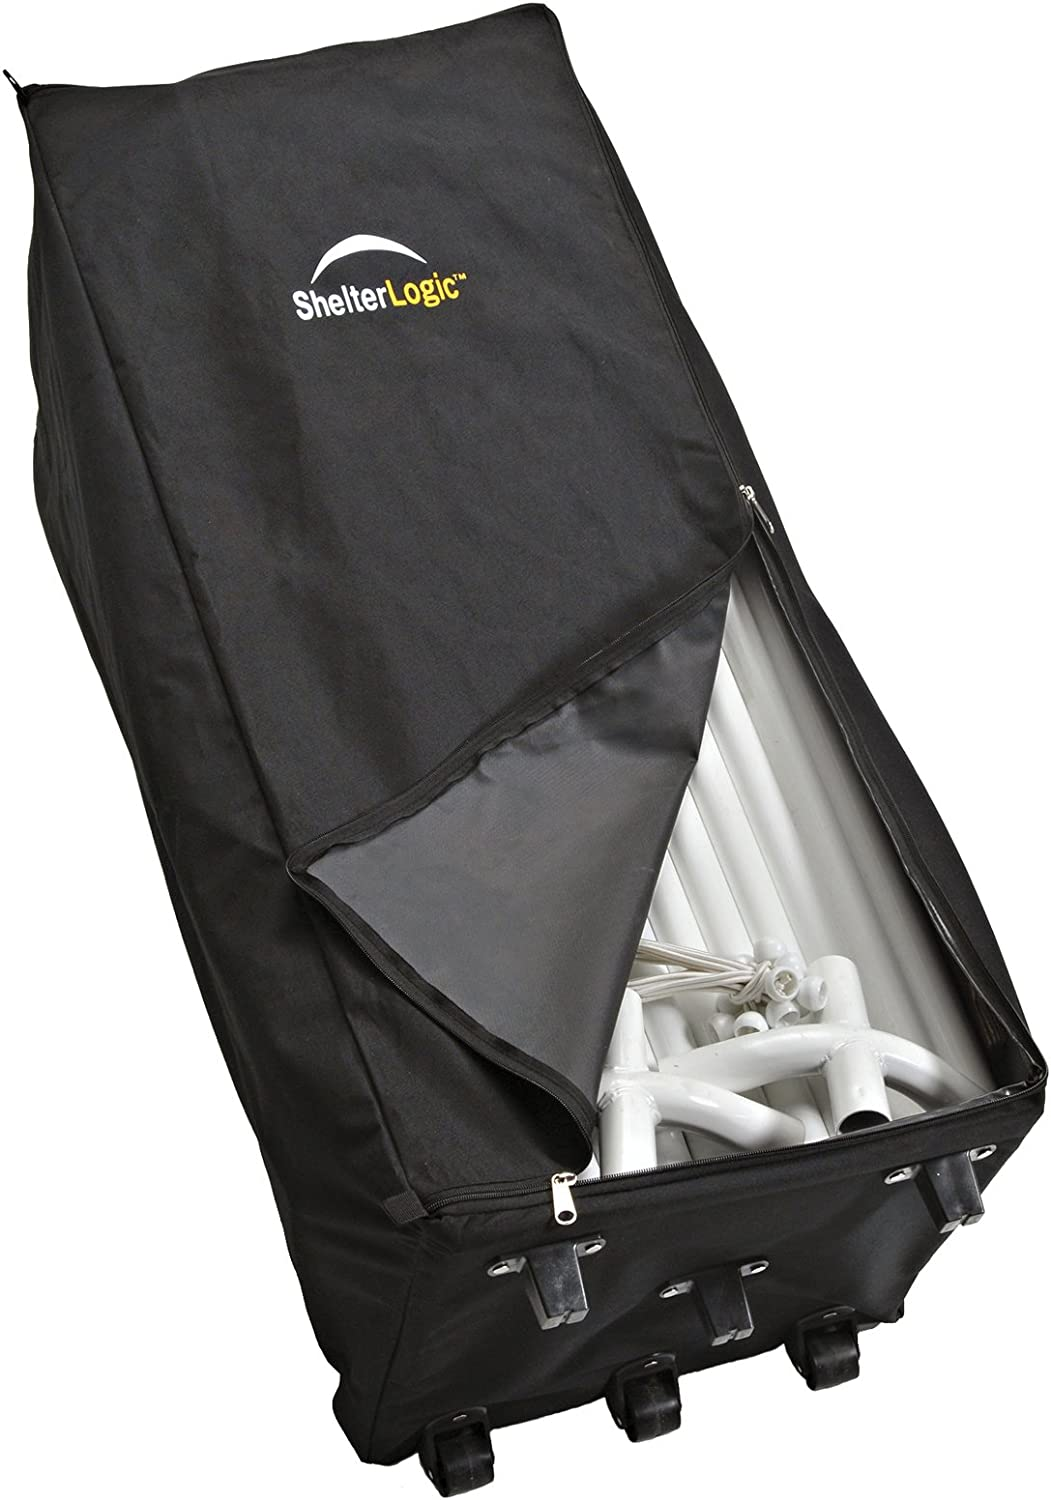 ShelterLogic Store-IT Canopy Rolling Storage Bag, Black